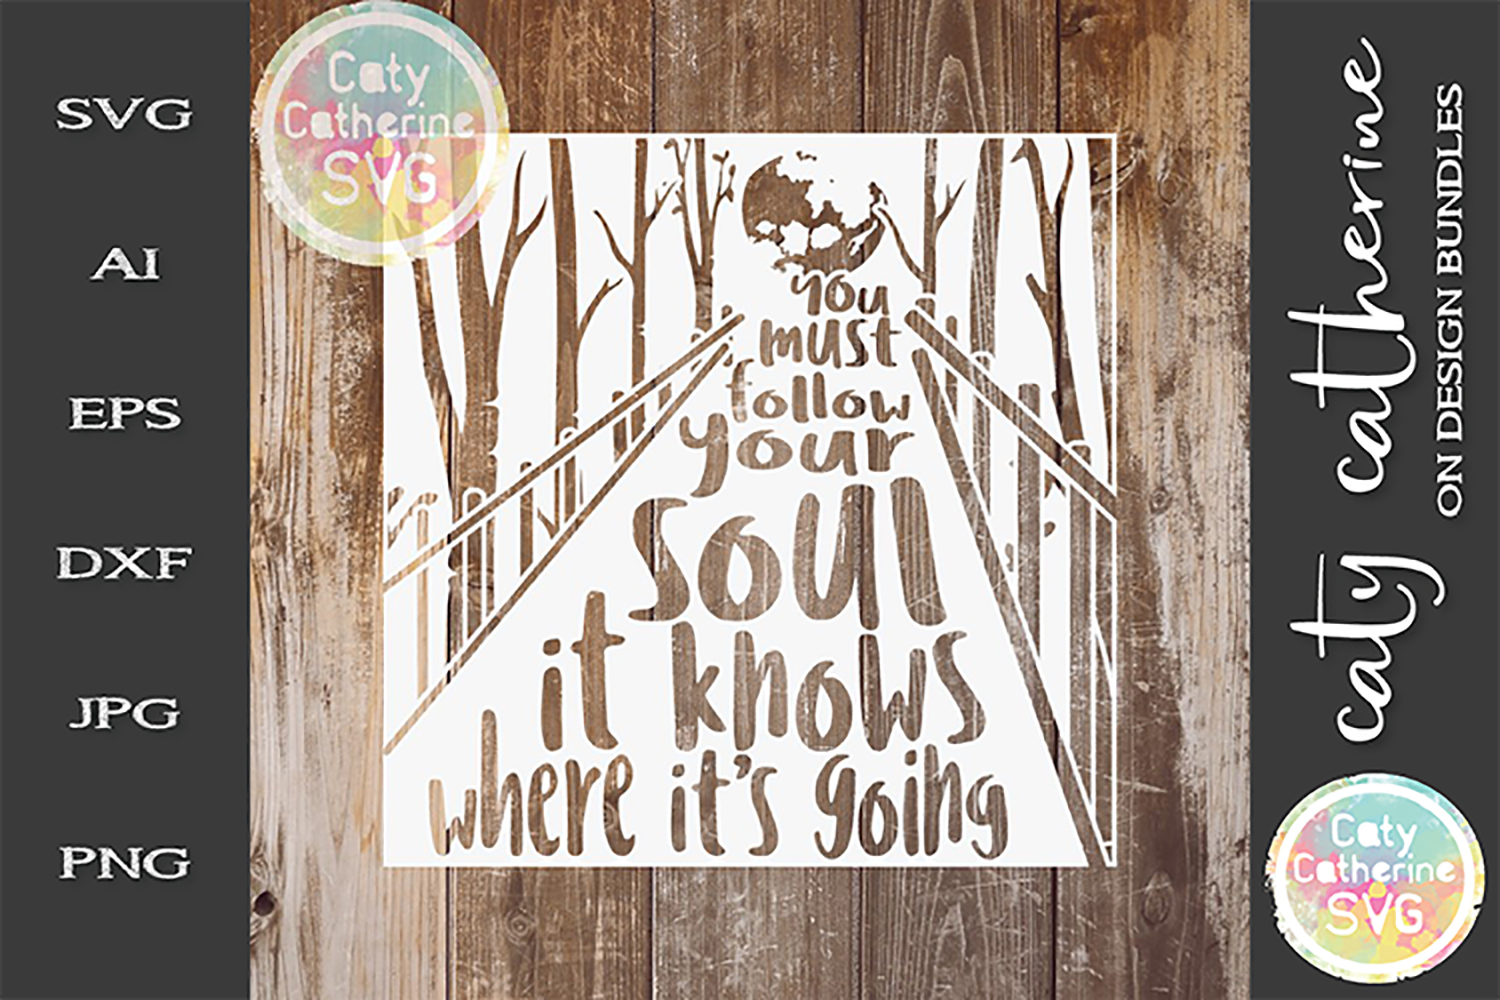 You Must Follow Your Soul It Knows Where It's Going SVG example image 1